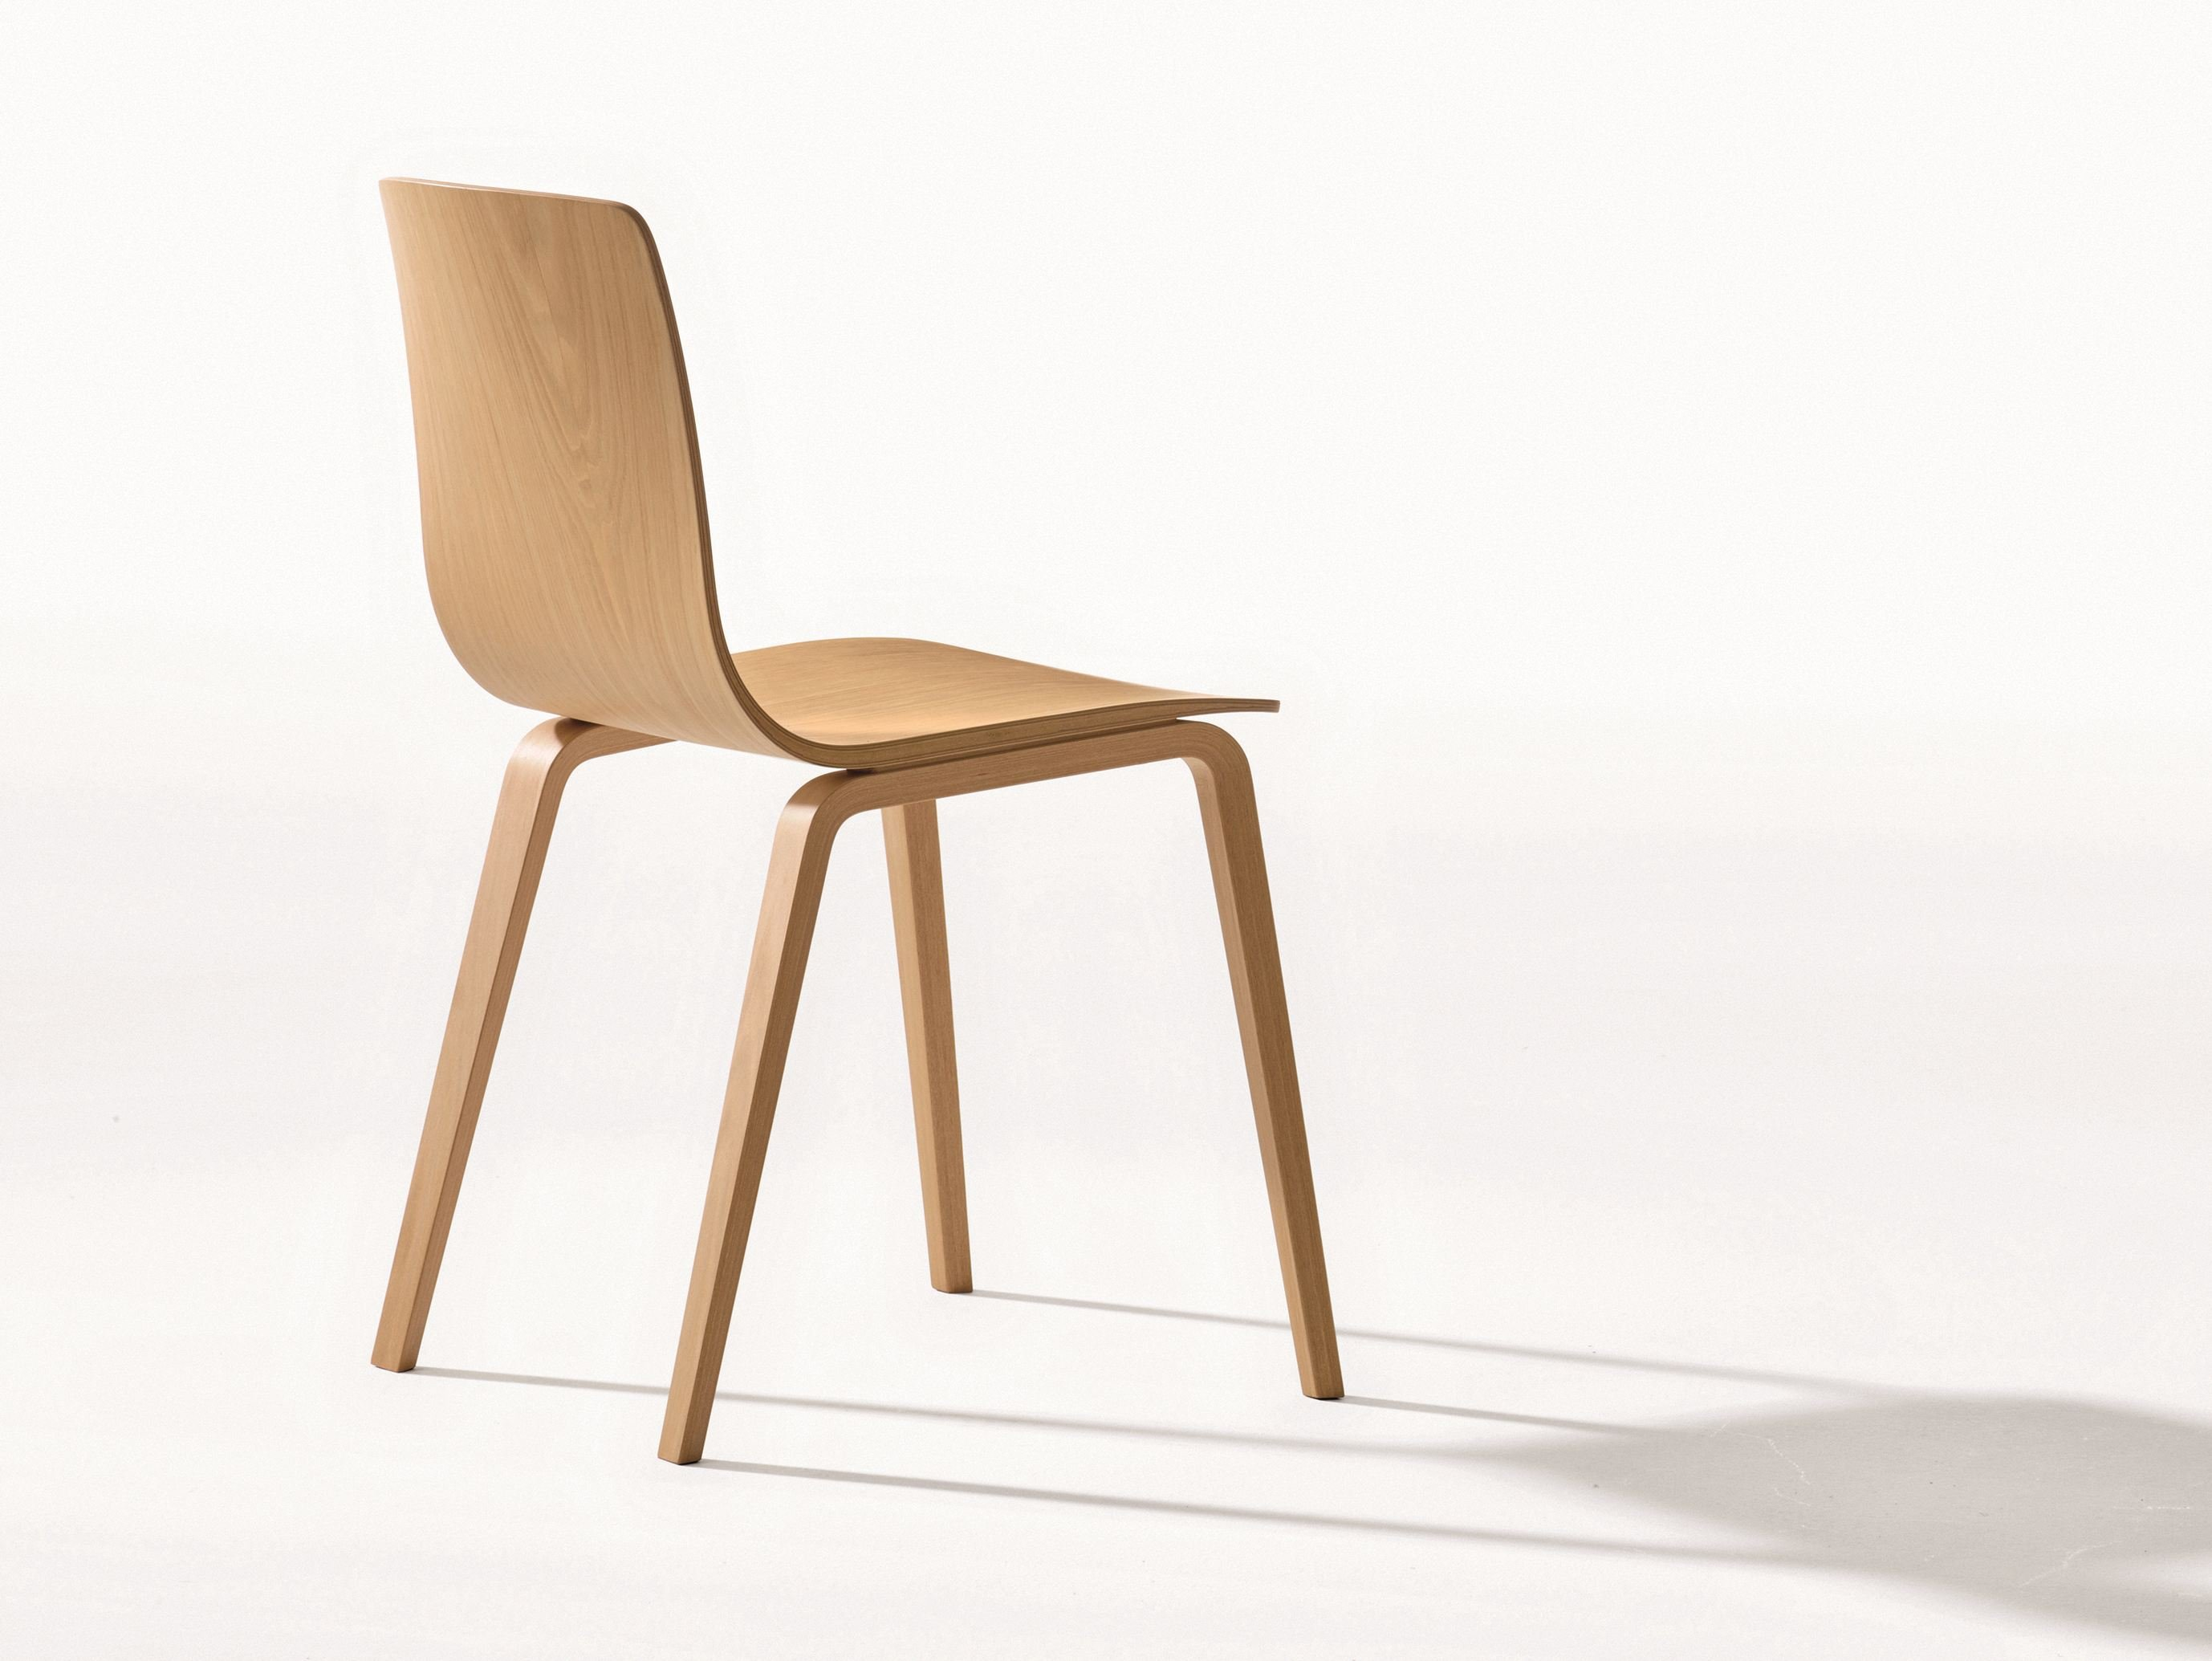 Stackable wooden chair aava collection by arper design antti kotilainen - Peindre chaise en bois ...